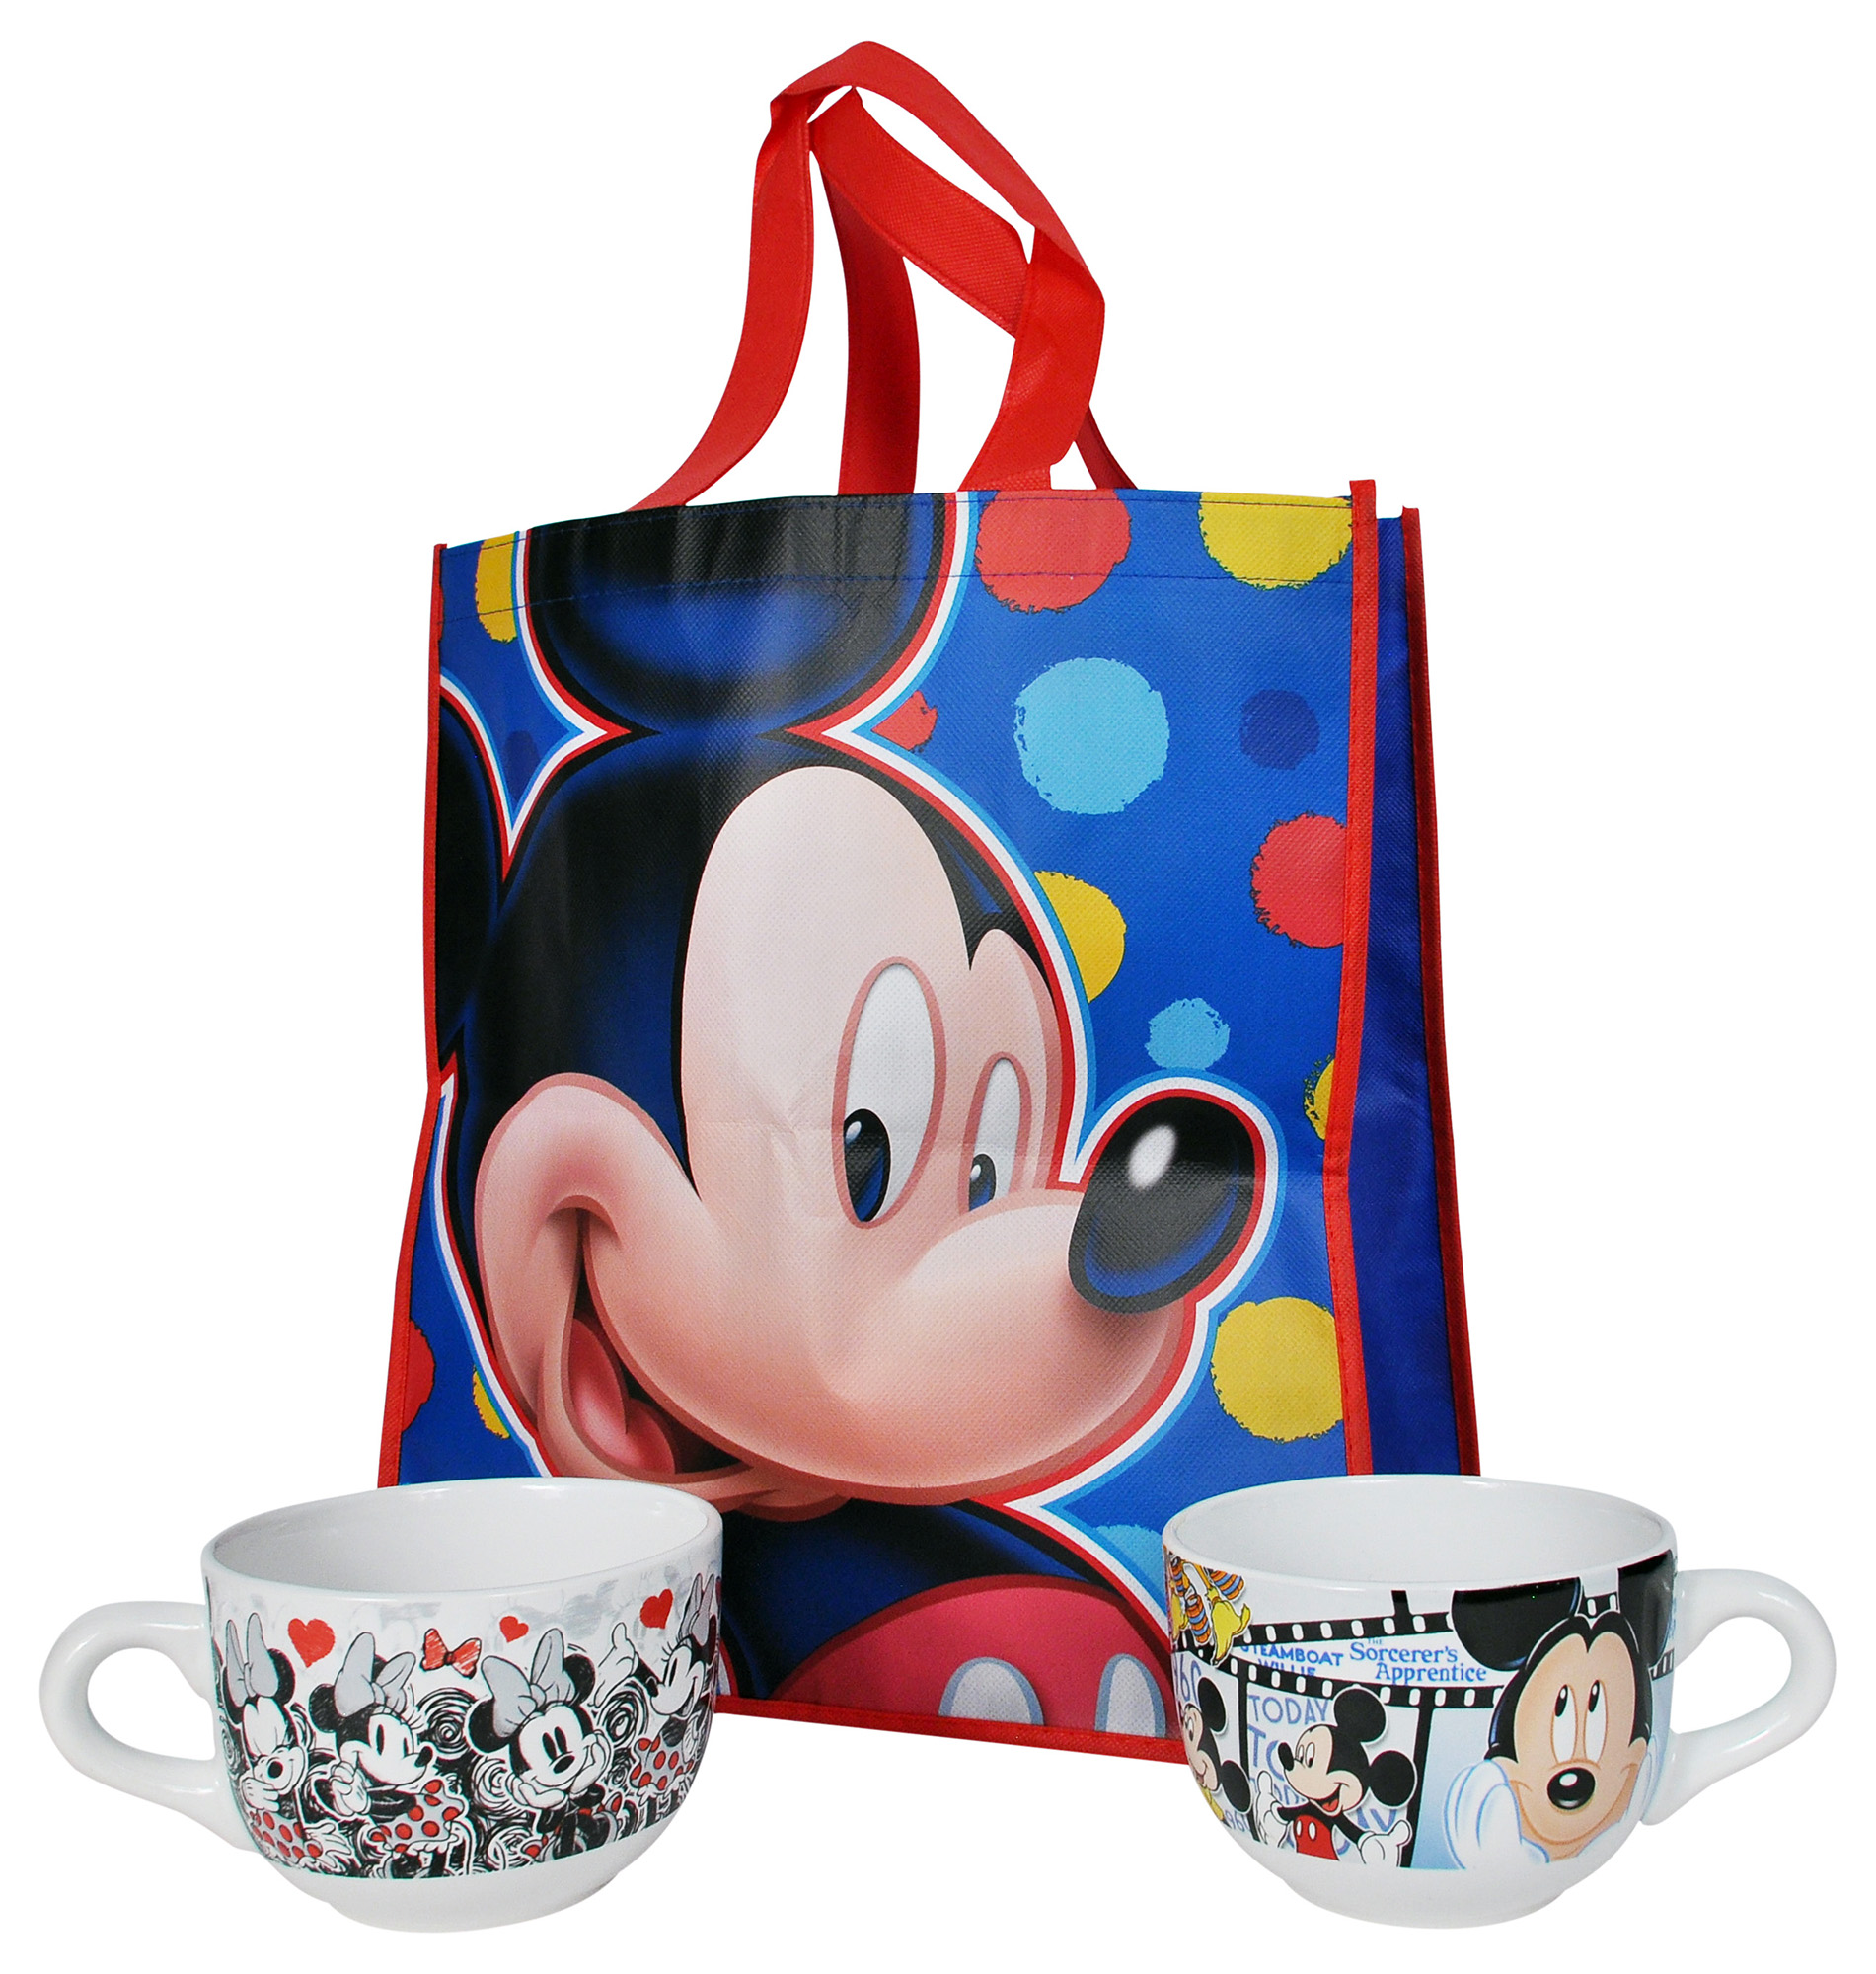 Disney Mickey & Minnie Mouse Soup Mugs w/ Gift Bag 3PC Set